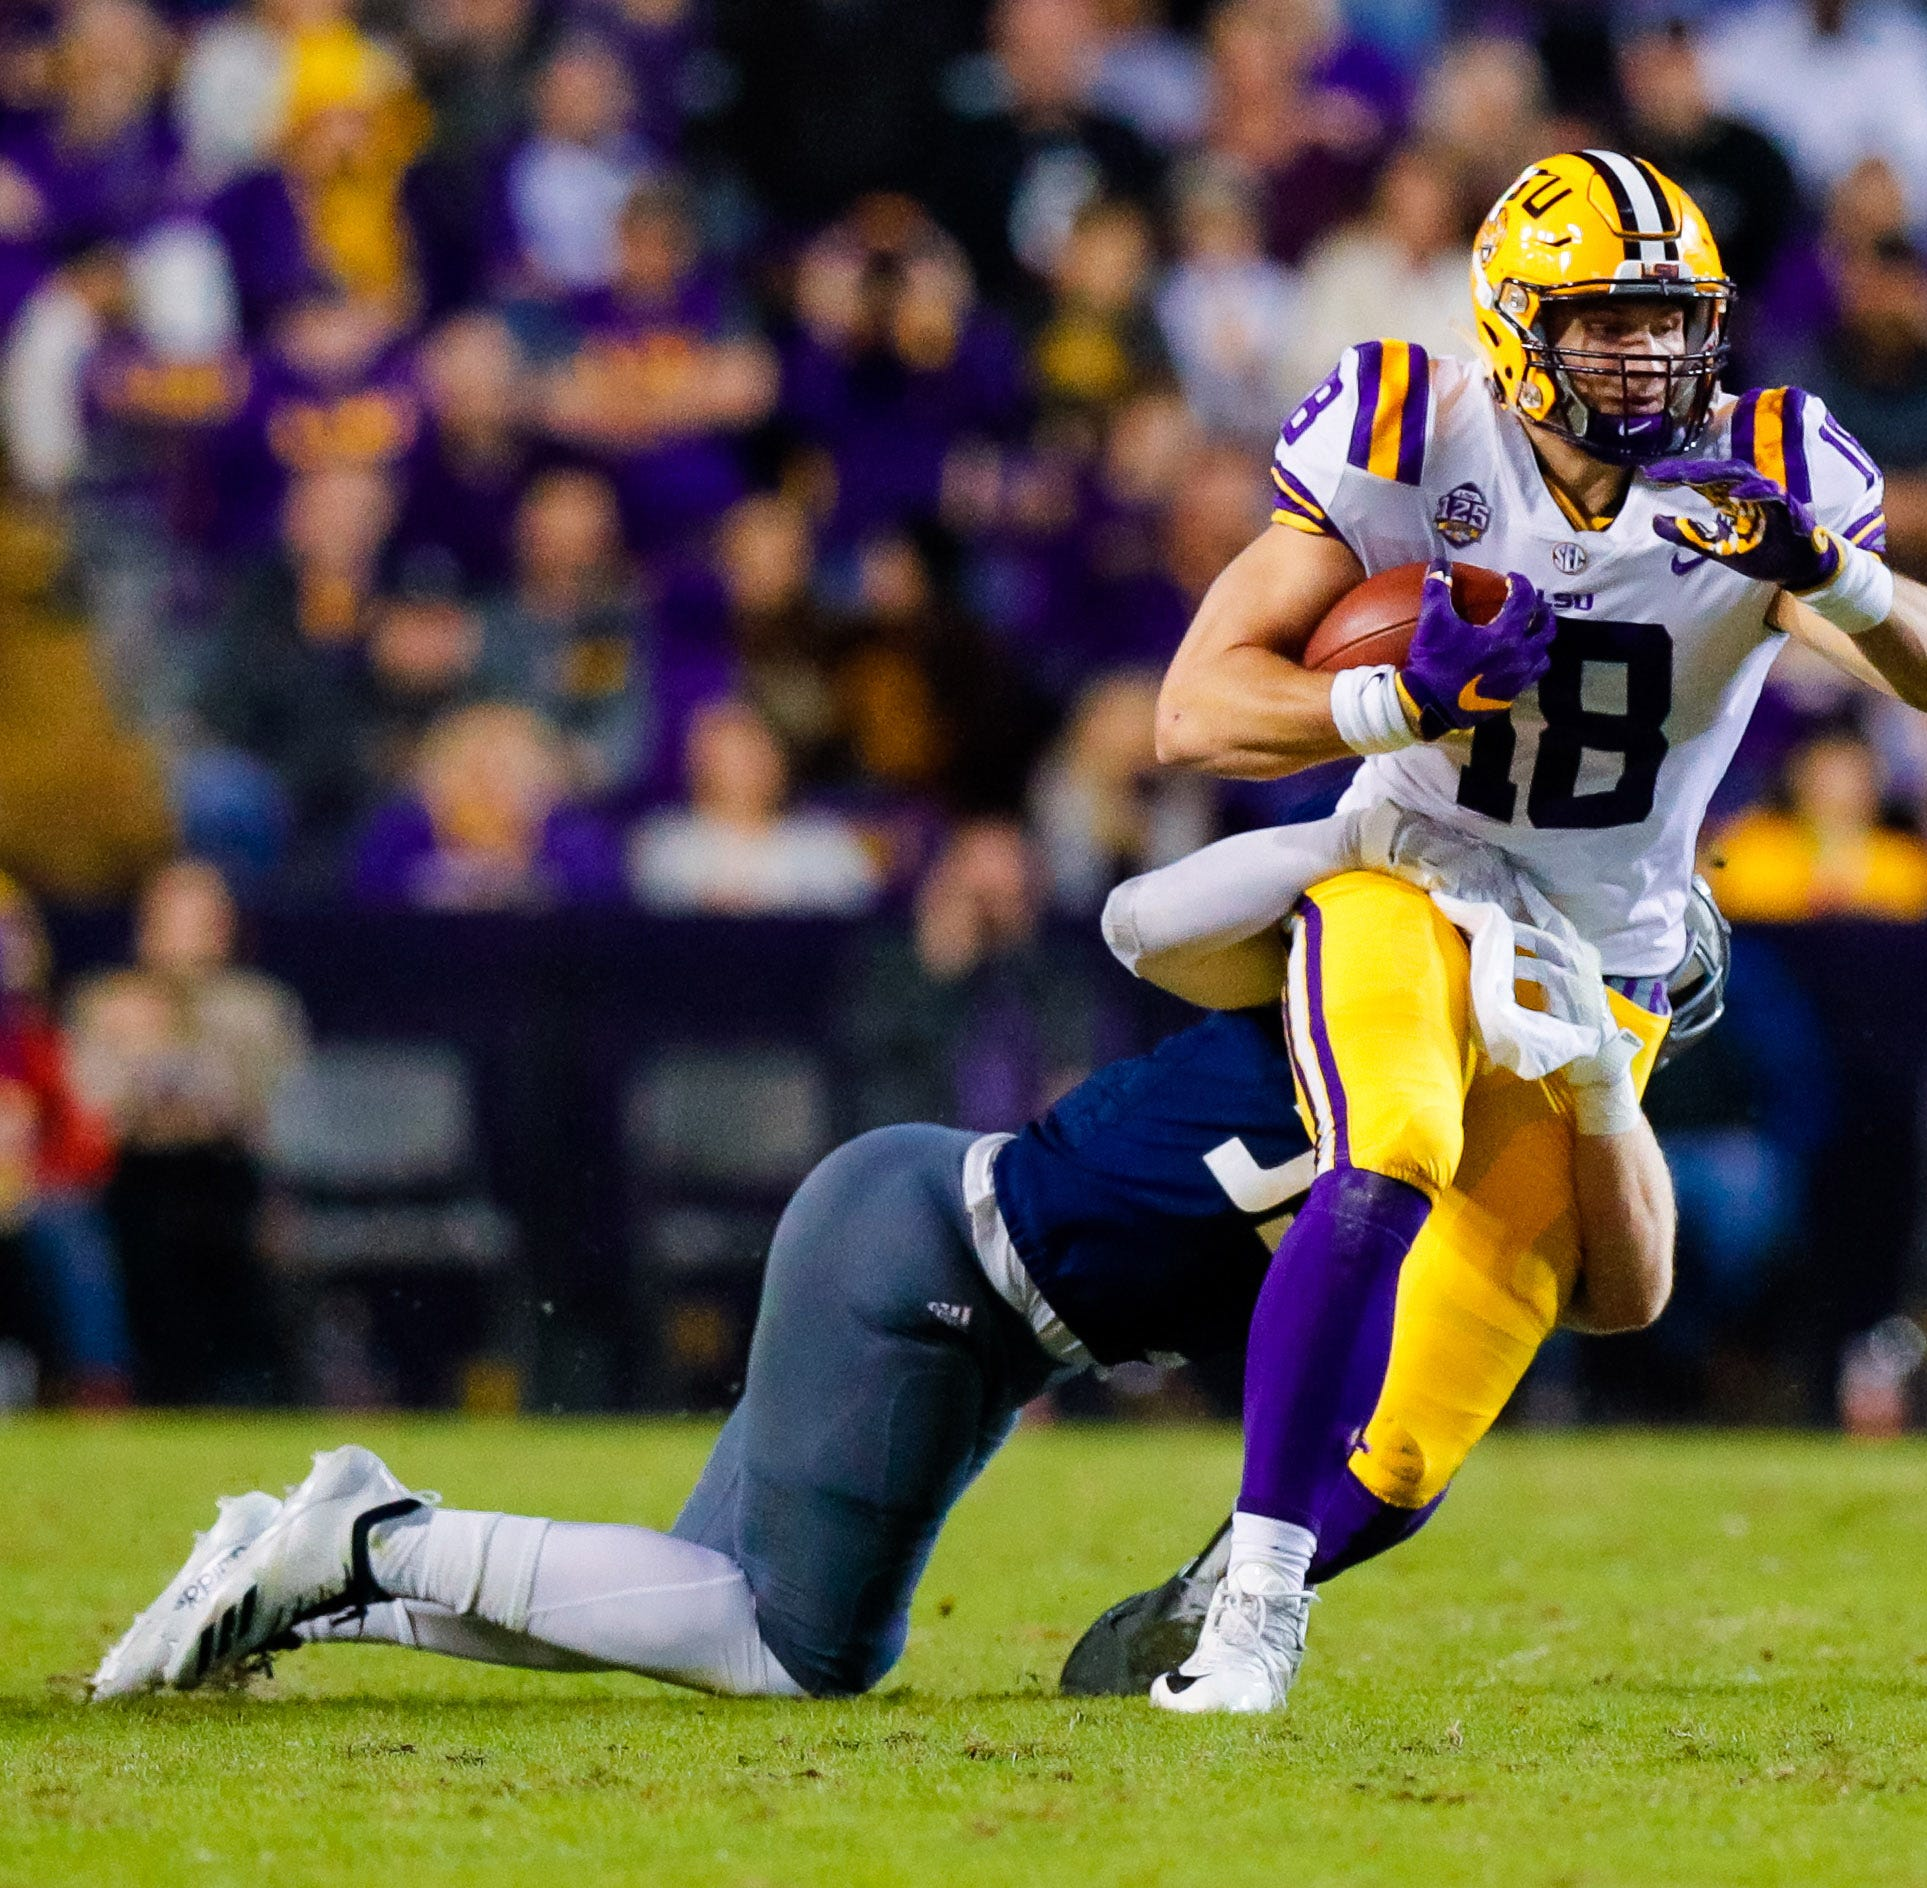 After White and Williams for LSU, it looks like Foster Moreau and Cole Tracy in NFL Draft